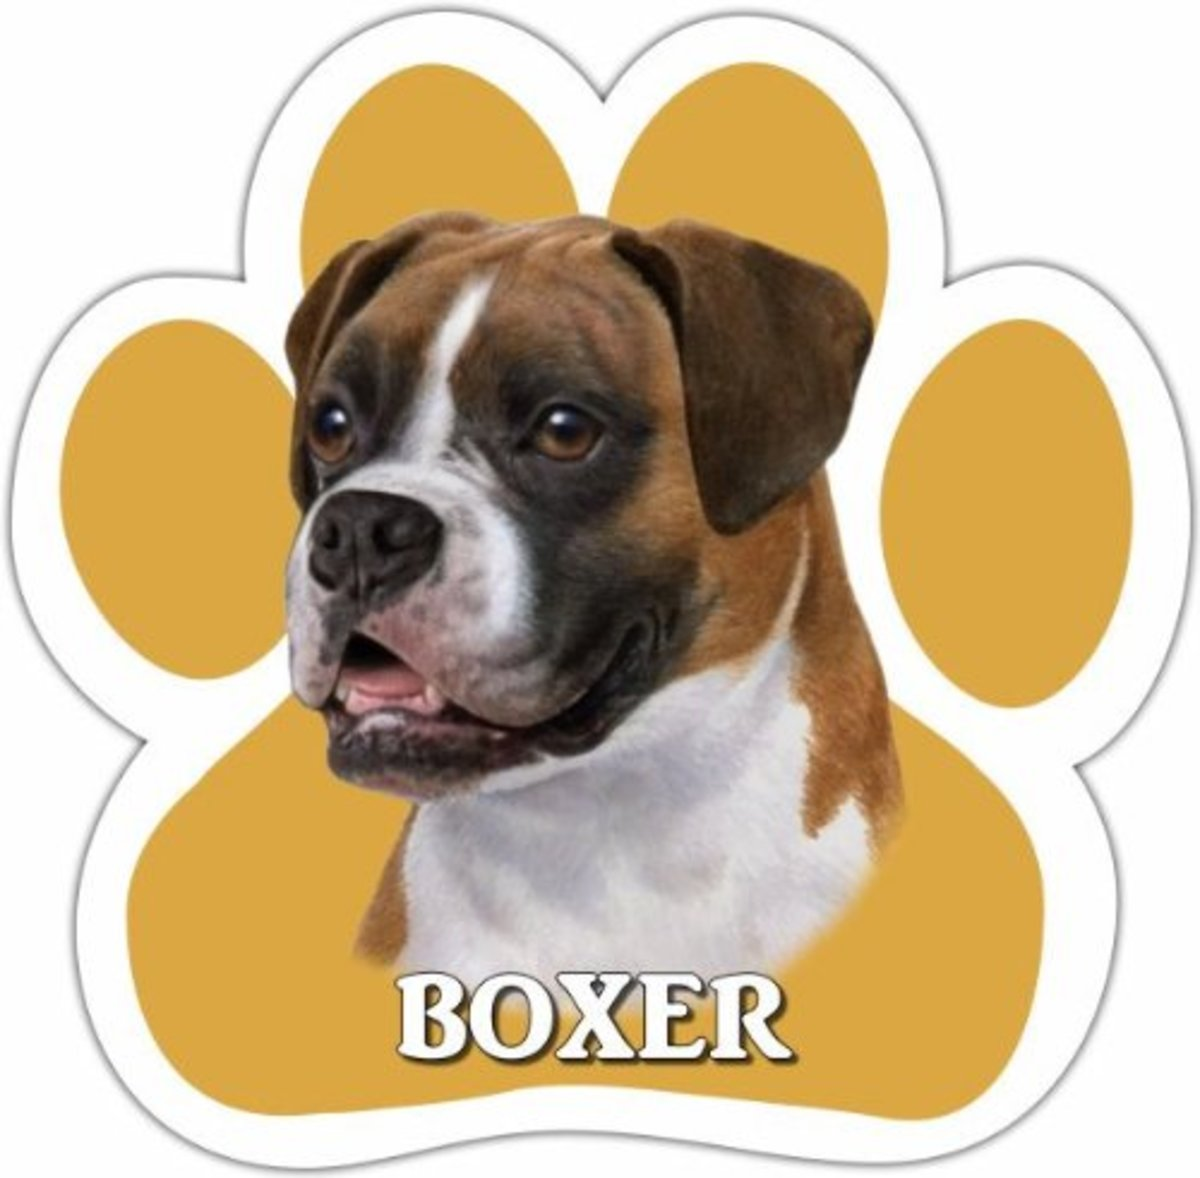 Buy This Car Boxer Magnet on Amazon